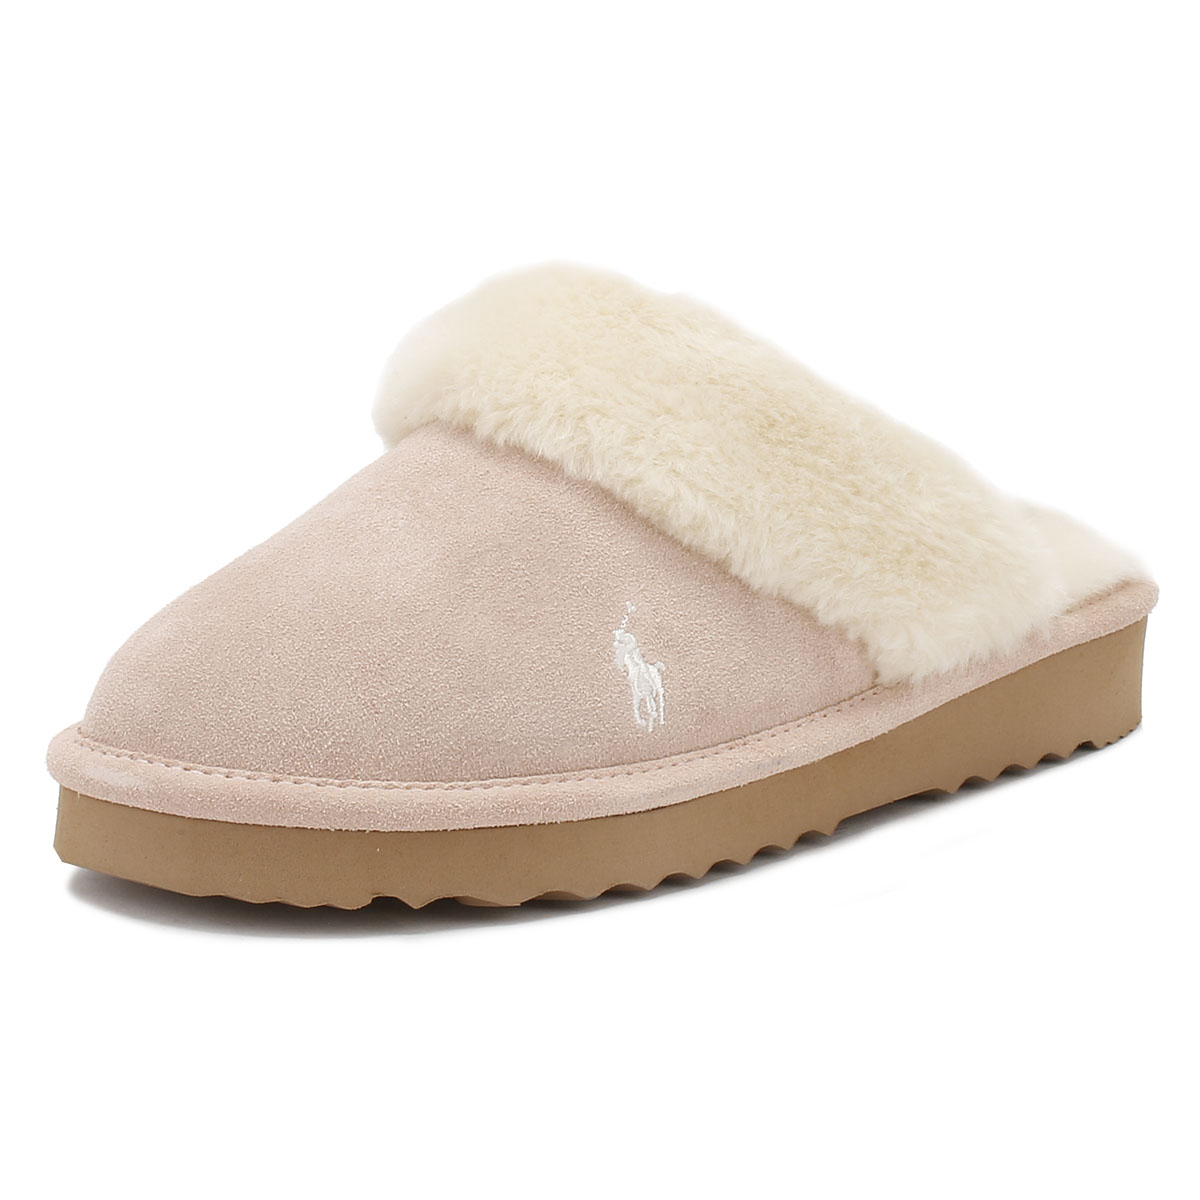 f8b8aff3143 Details about Ralph Lauren Womens Slippers Snuff Light Pink Cream Charlotte  Mules Home Shoes